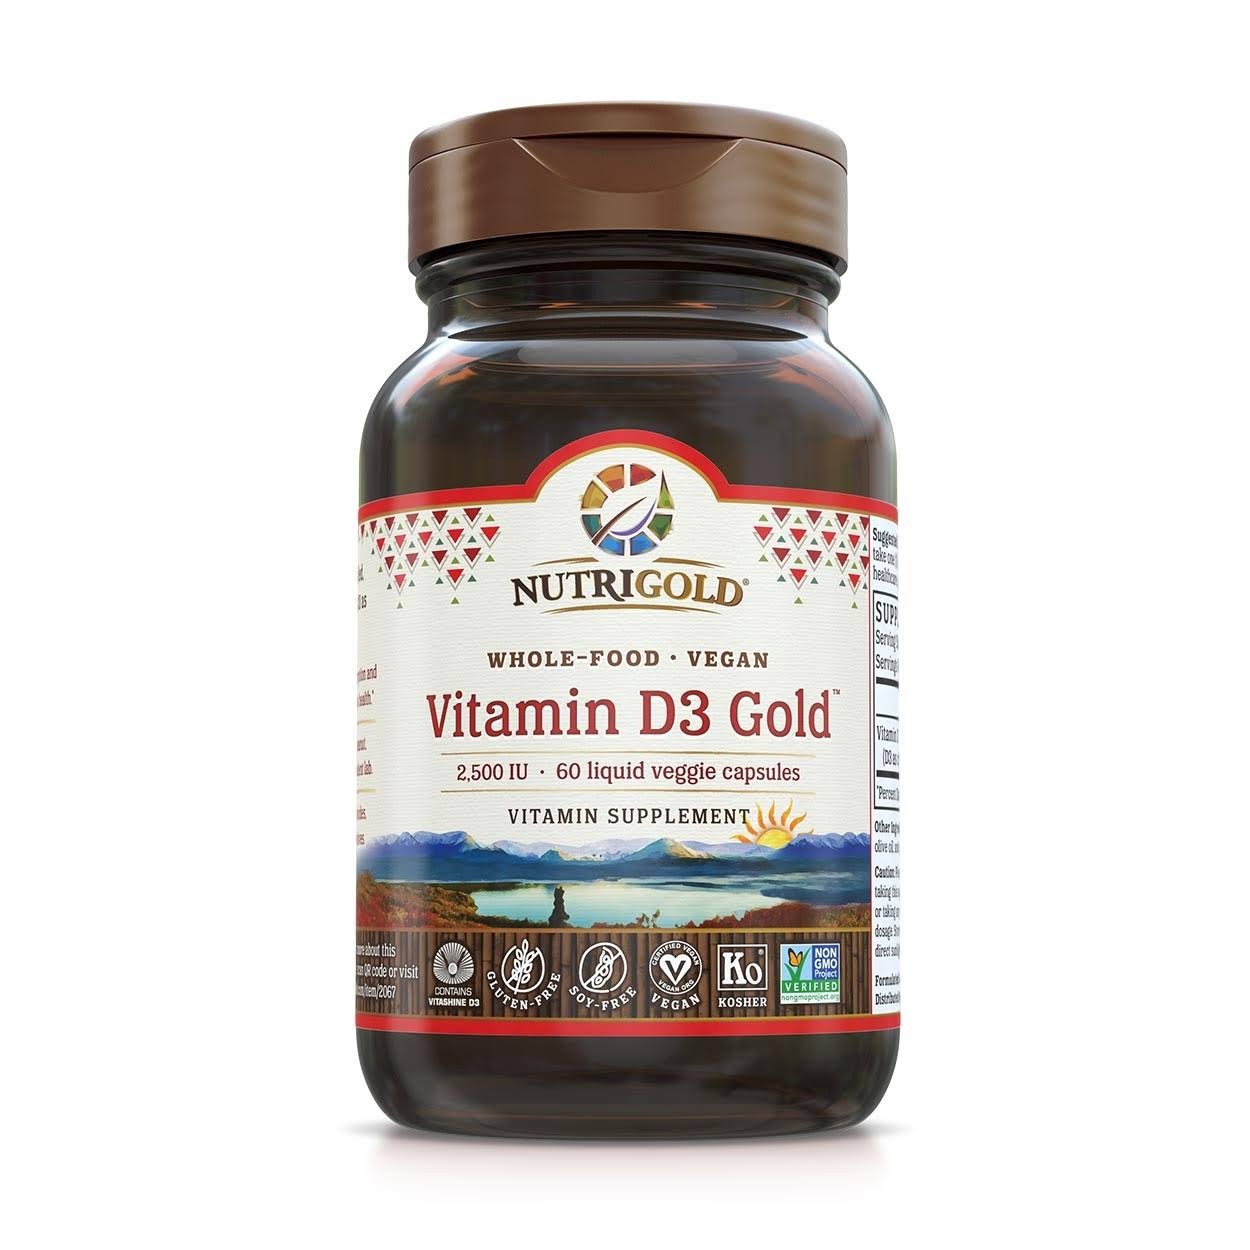 Nutrigold Vitamin D3 Gold Bone Prostate and Immune Support Veggie Capsules - 60ct